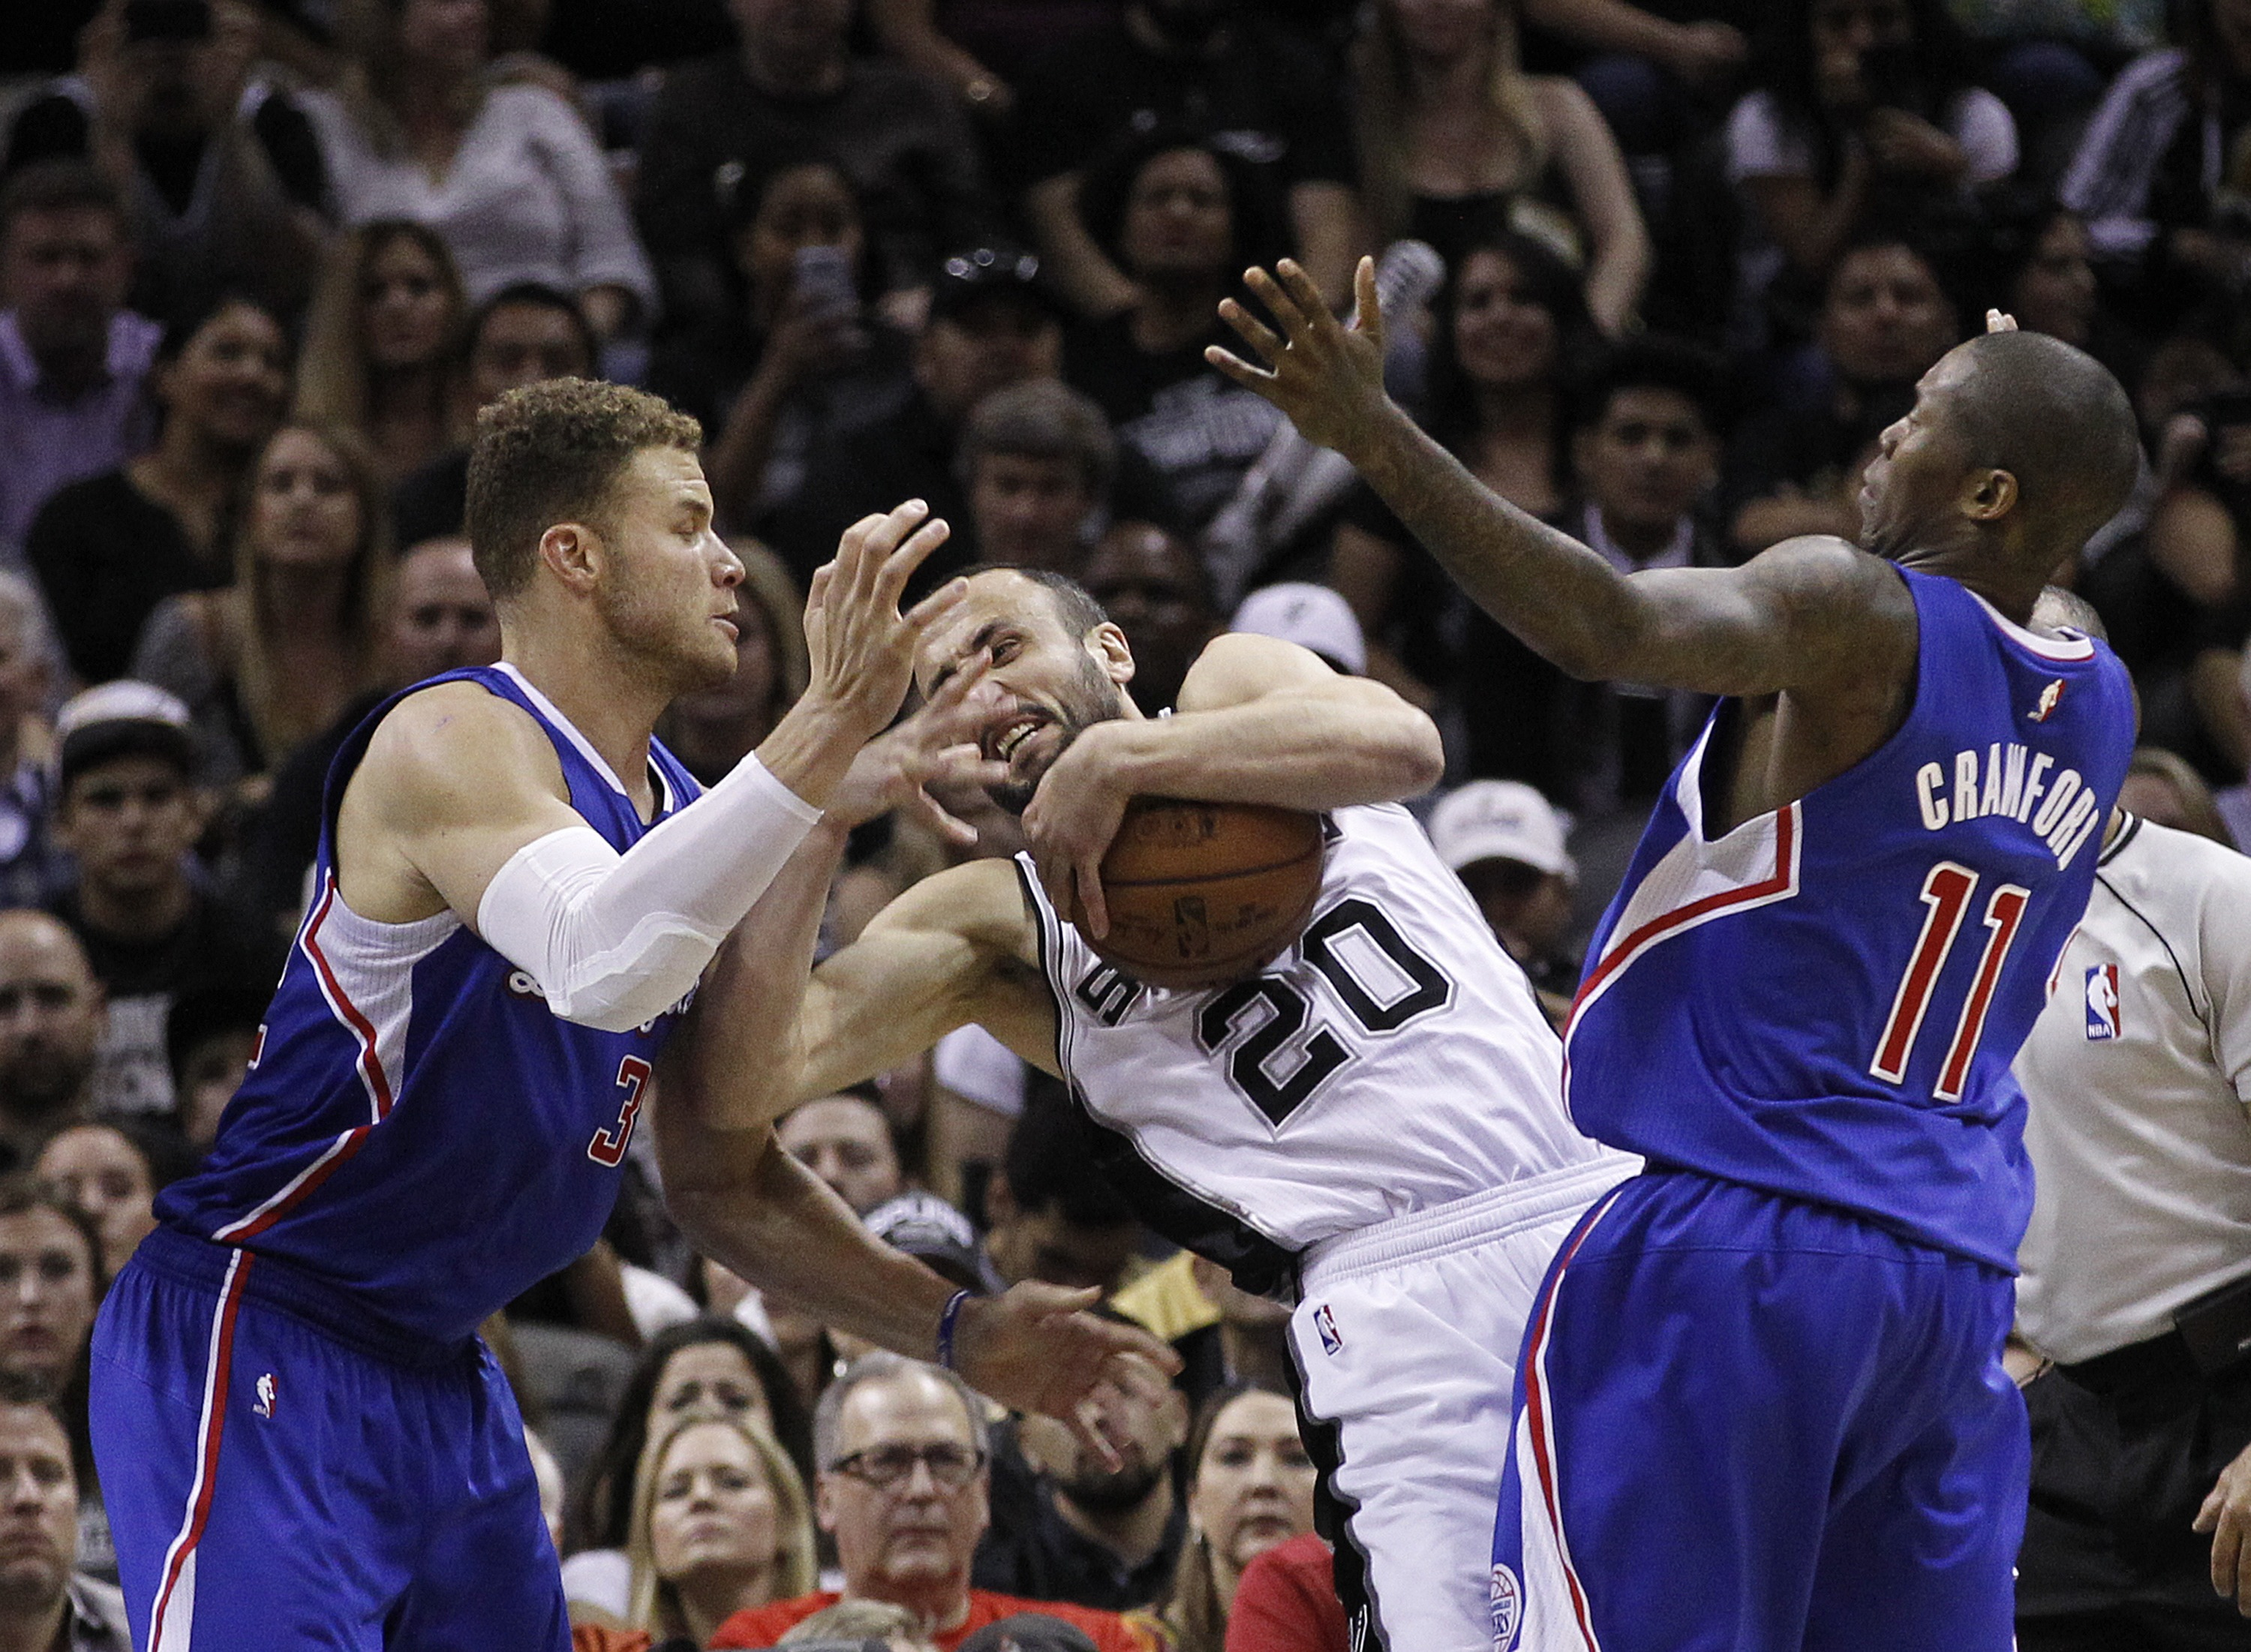 SAN ANTONIO, TX - APRIL 30: Manu Ginobili #20 of the San Antonio Spurs fights to keep control of the ball against Blake Griffin #32 and Jamal Crawford #11 of the Los Angeles Clippers during Game Six of the Western Conference quarterfinals of the 2015 NBA